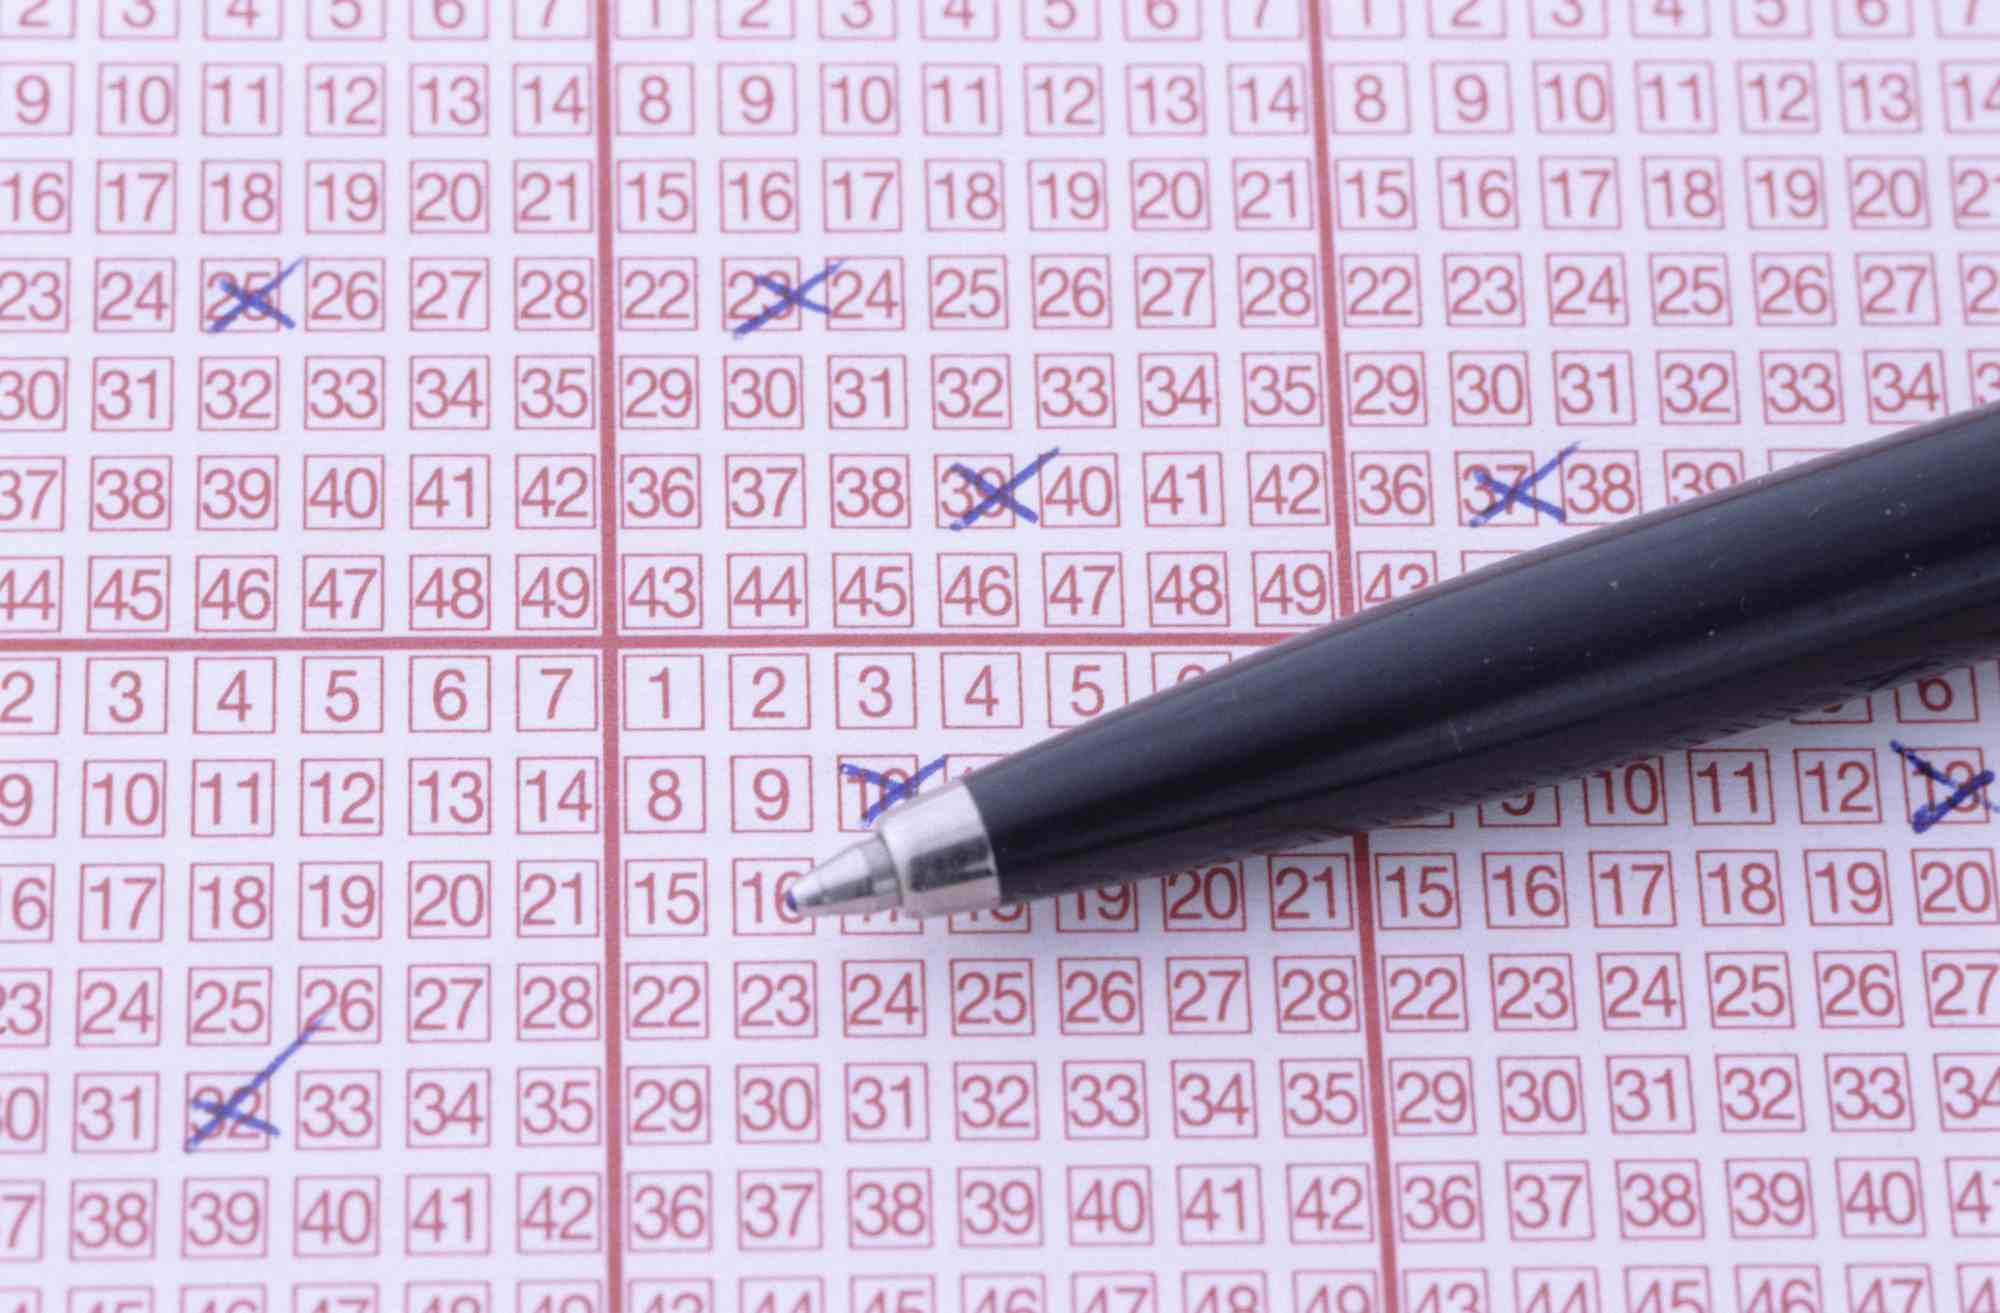 Markings on lottery ticket, close up